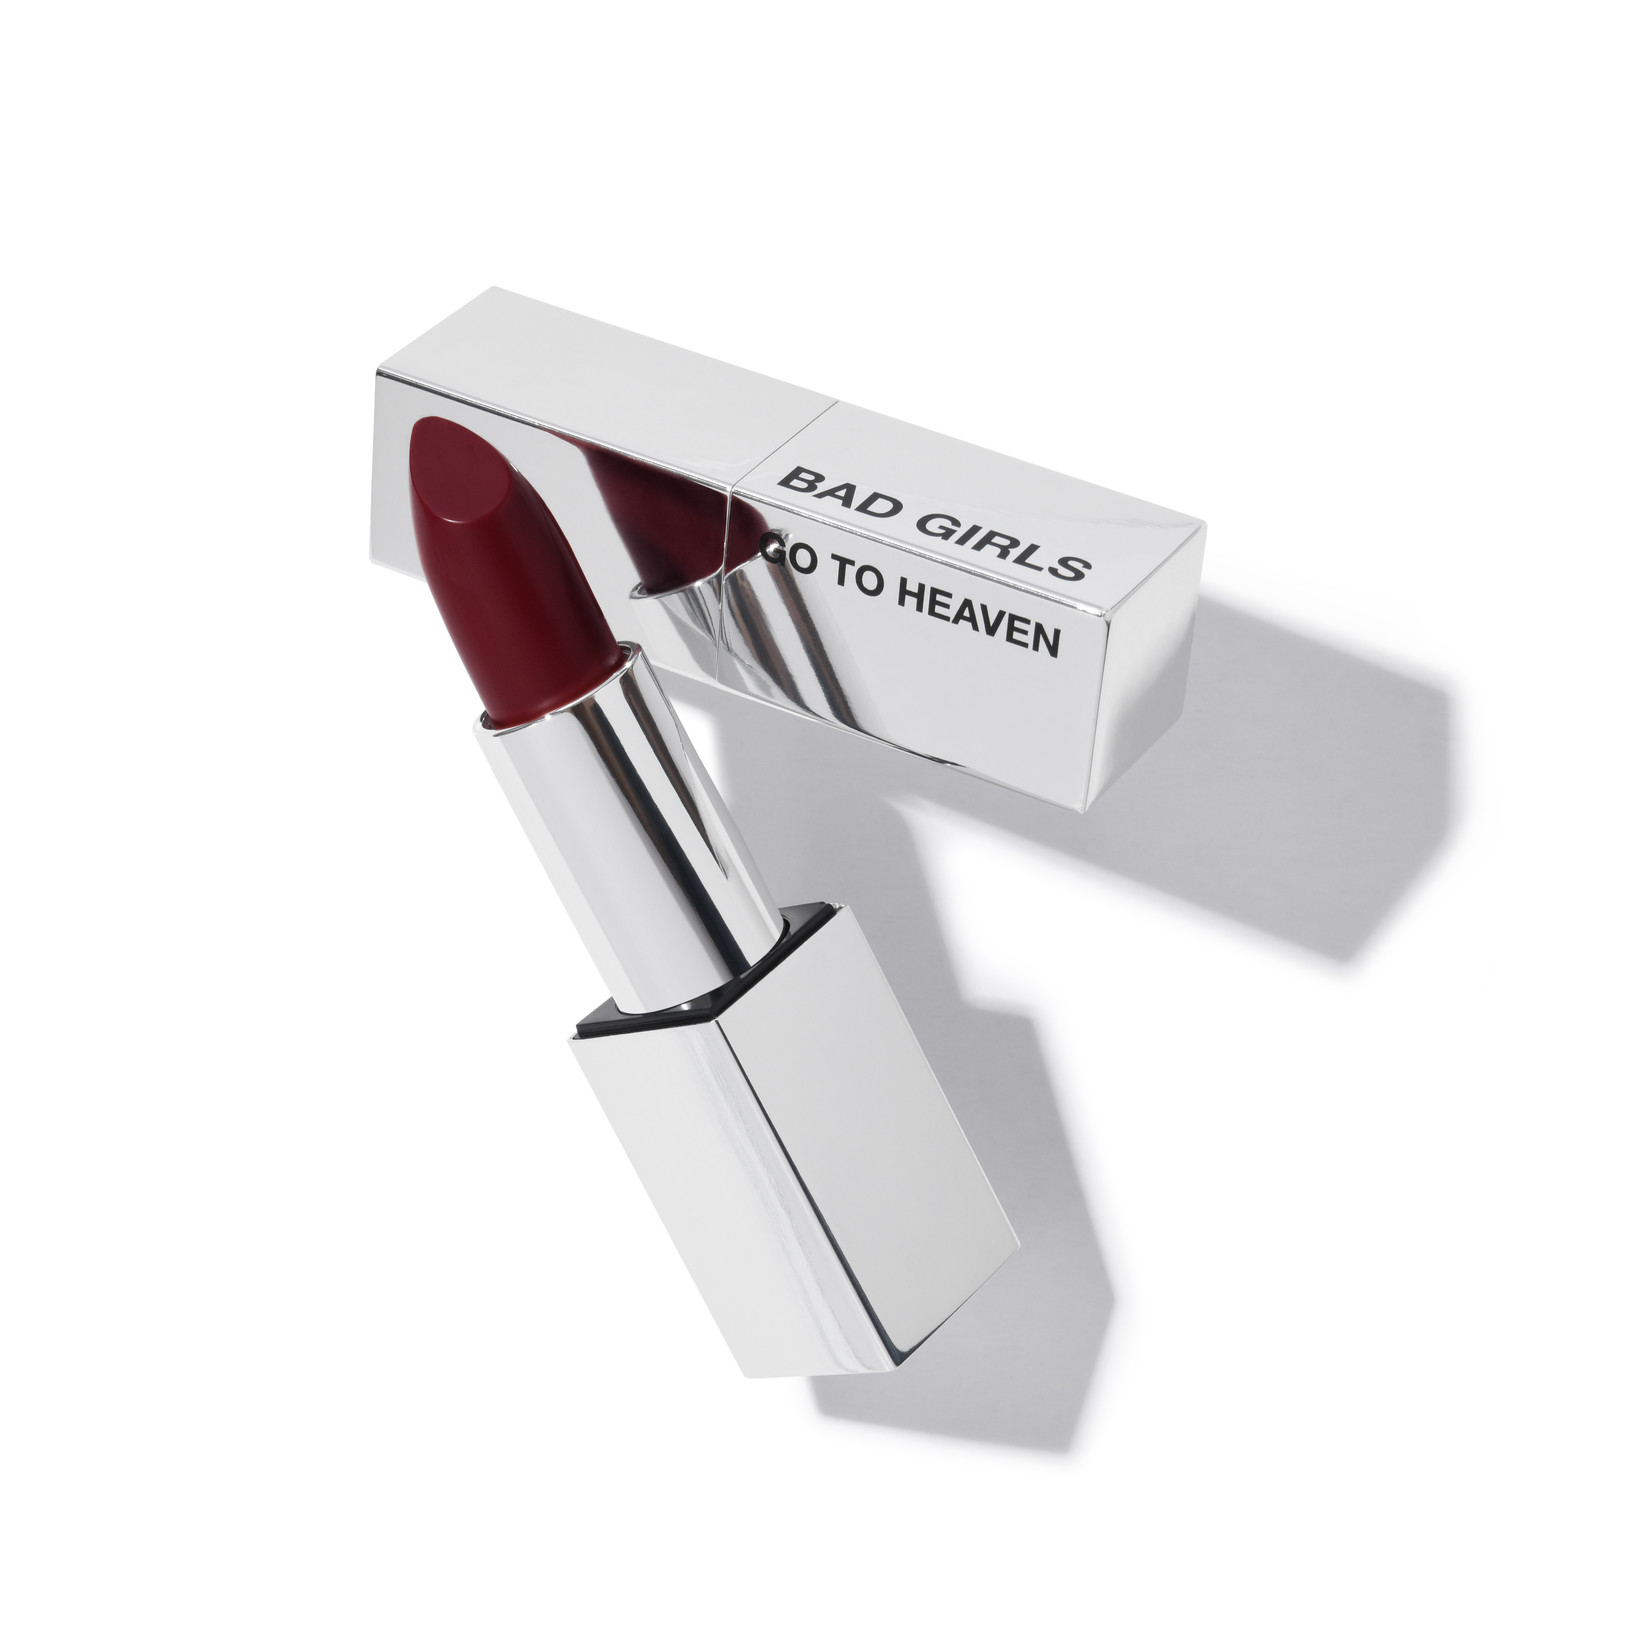 BAD GIRLS GO TO HEAVEN BAD GIRLS GO TO HEAVEN · LIPSTICK EXTREME COLOR 206 OBSEXIVE